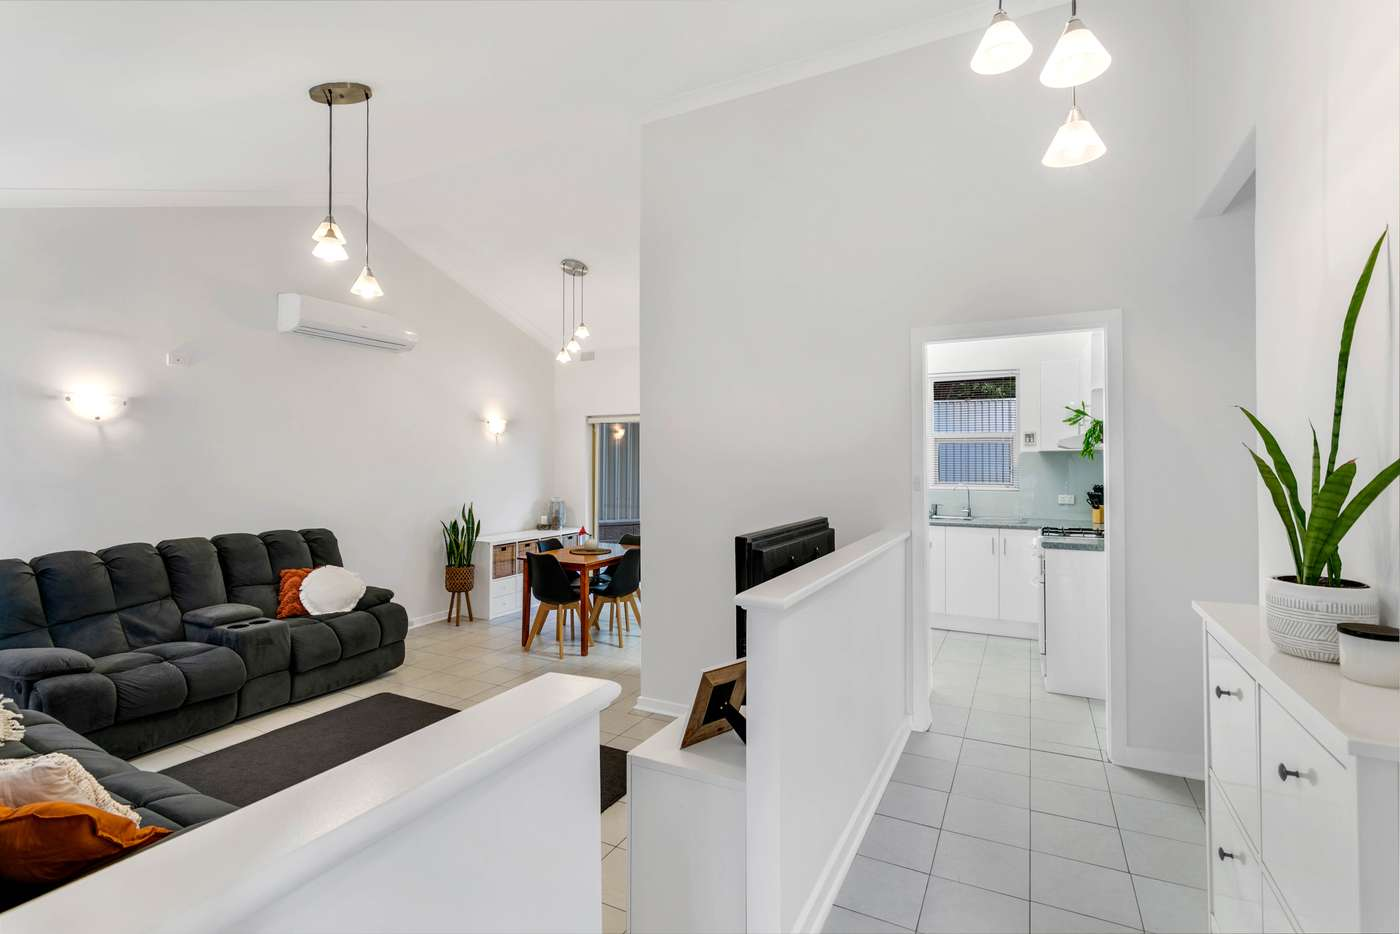 Sixth view of Homely house listing, 22 Lynlee Crescent, Huntfield Heights SA 5163